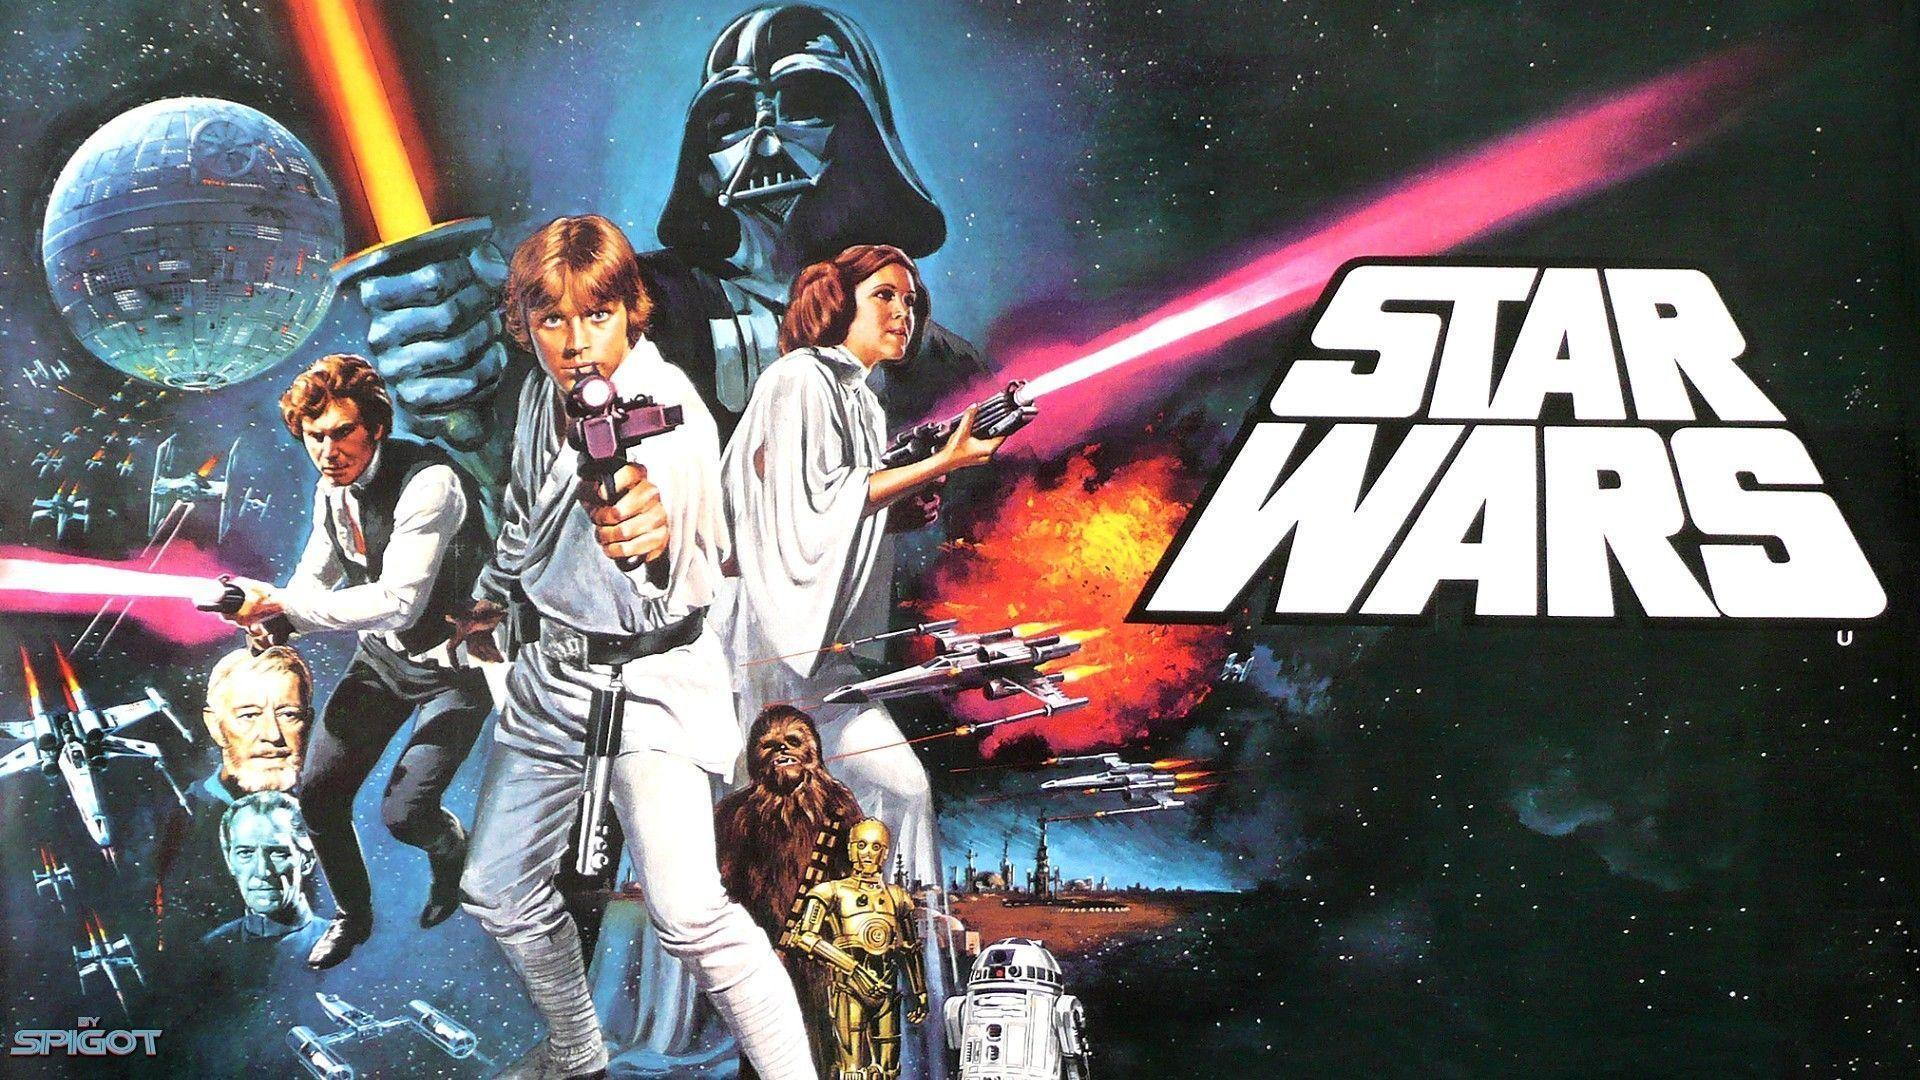 Download Star Wars Poster Wallpapers 1920x1080